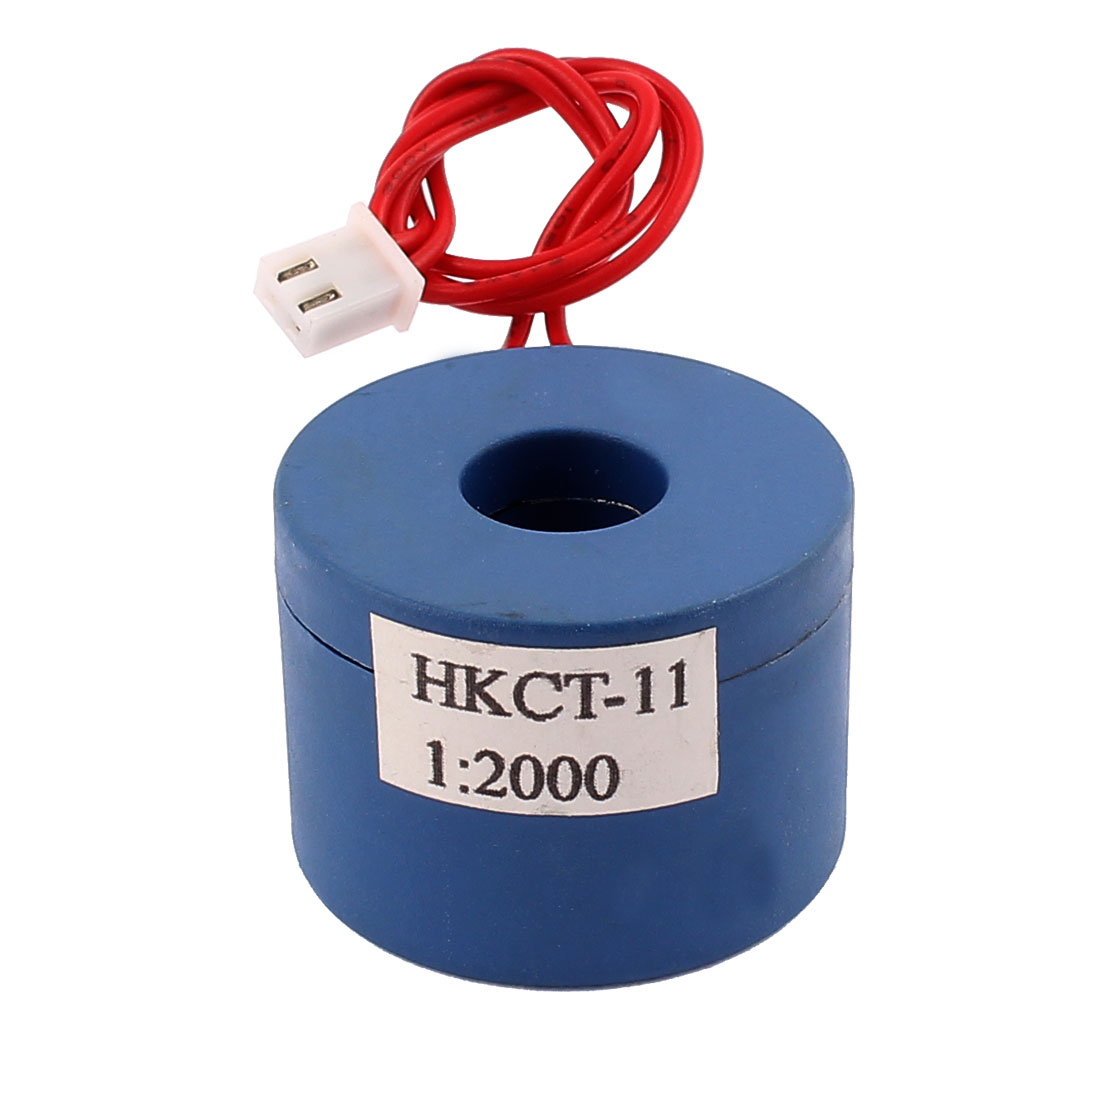 33 x 24 x 11mm Micro Precision Current Transformer for Current Detection